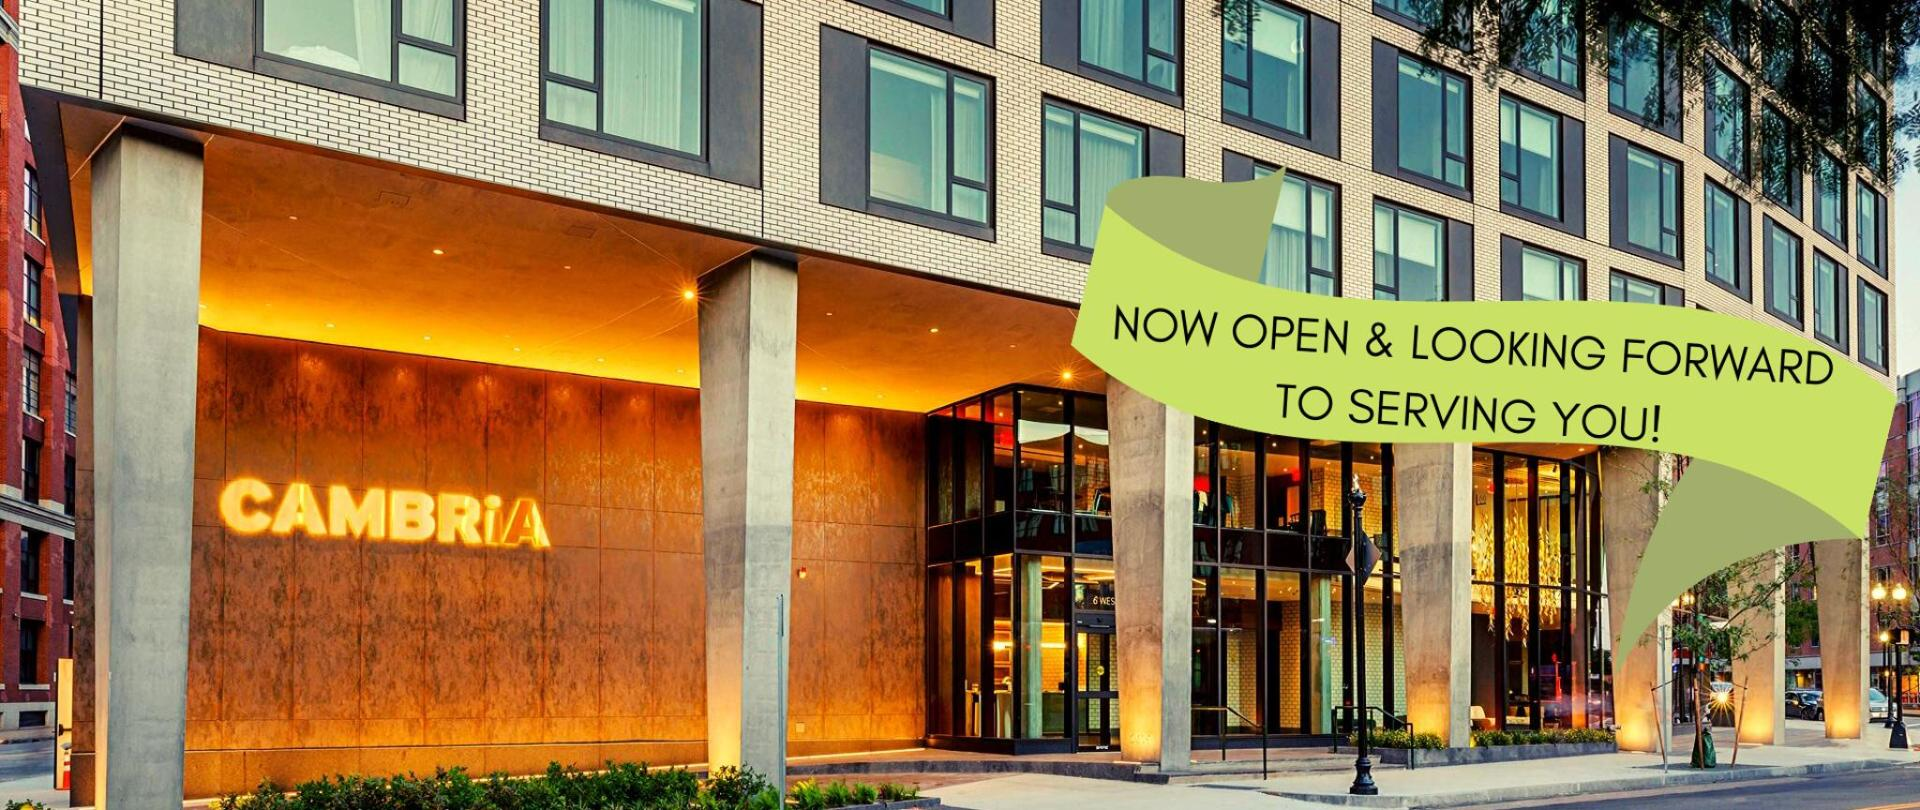 NOW OPEN & LOOKING FORWARD TO SERVING YOU SOON!.png